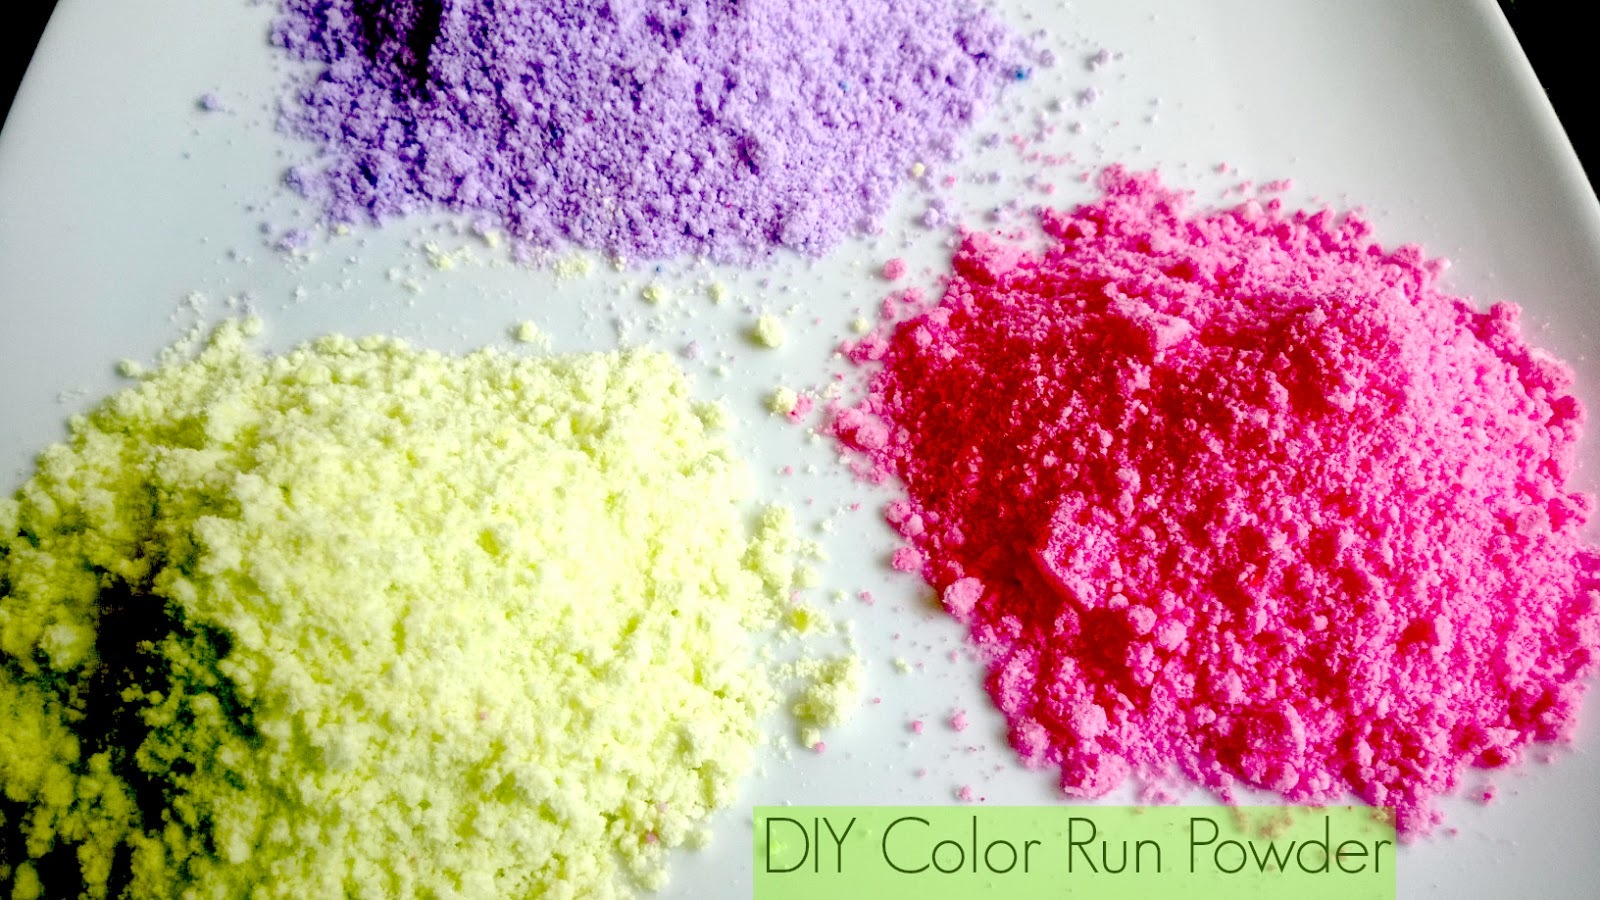 colorrunpowder.jpg